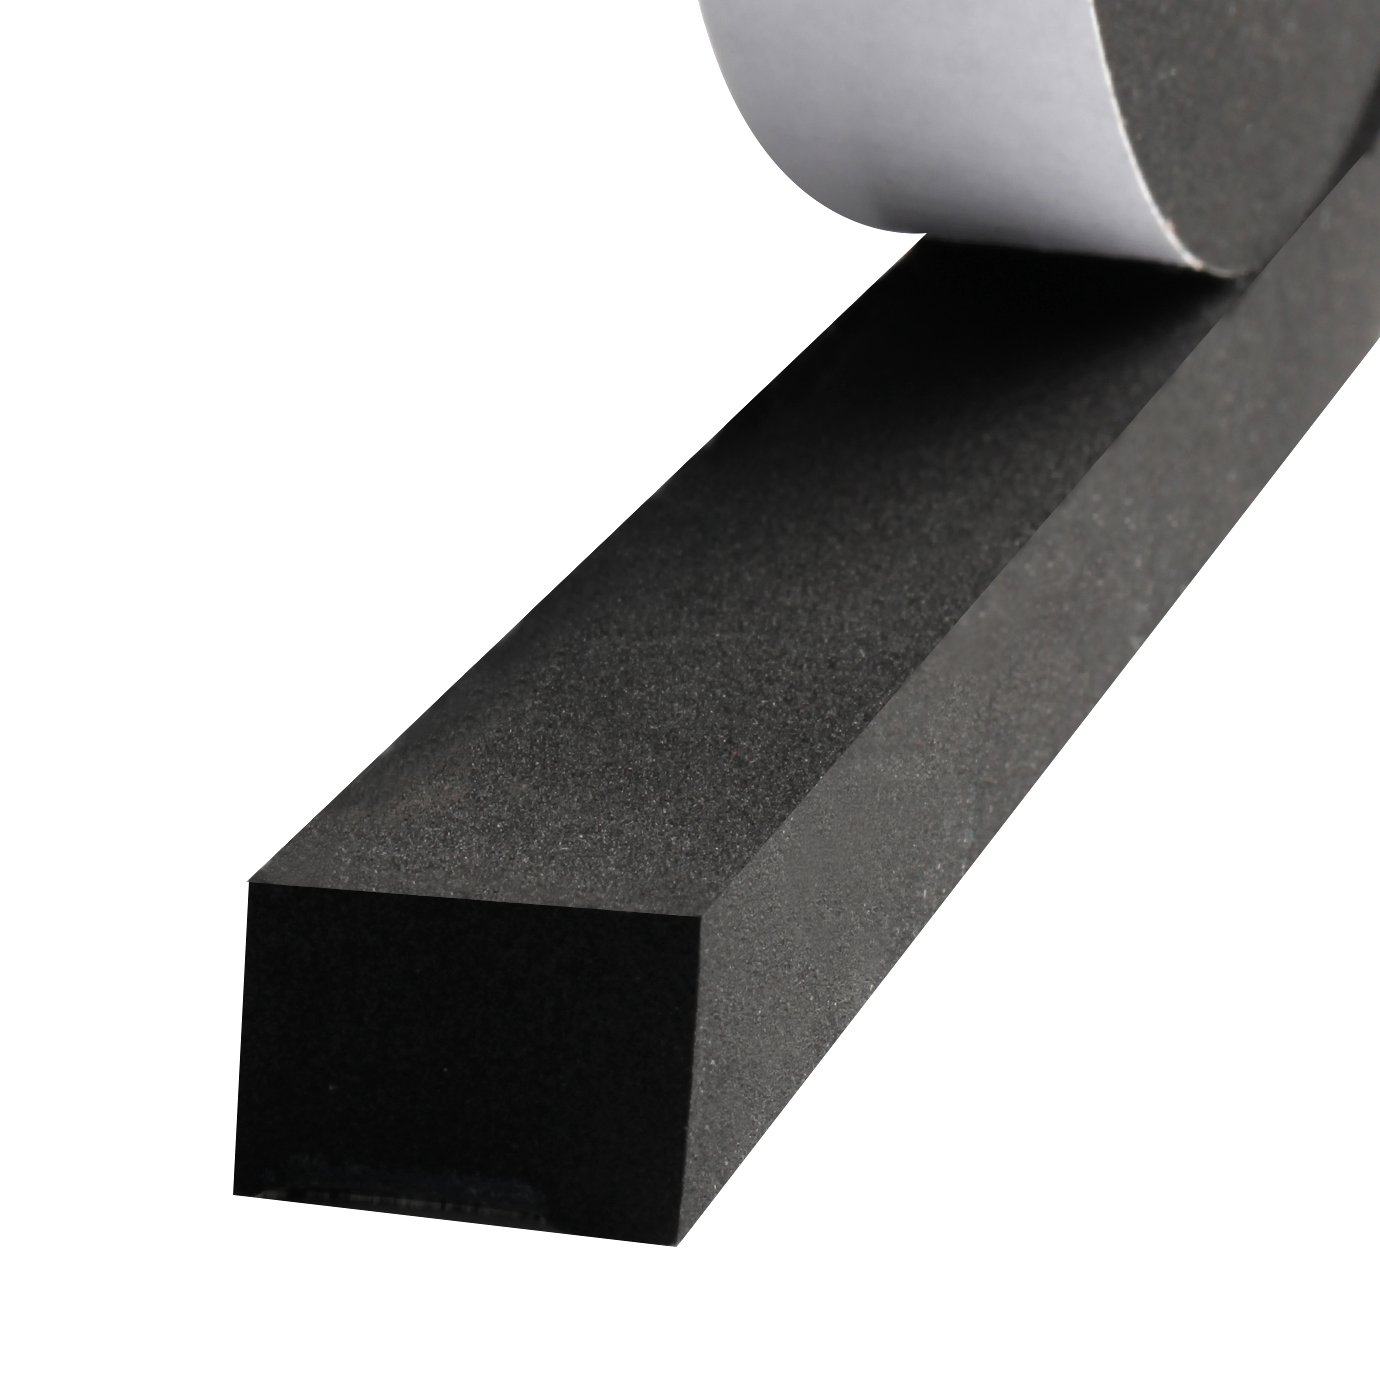 Foam Weather Stripping, Adhesive Foam Tape Sound Proof Insulation Closed Cell Foam Seal 1 Inch Wide X 3/4 Inch Thick X 13 Feet Long (1in 3/4in)